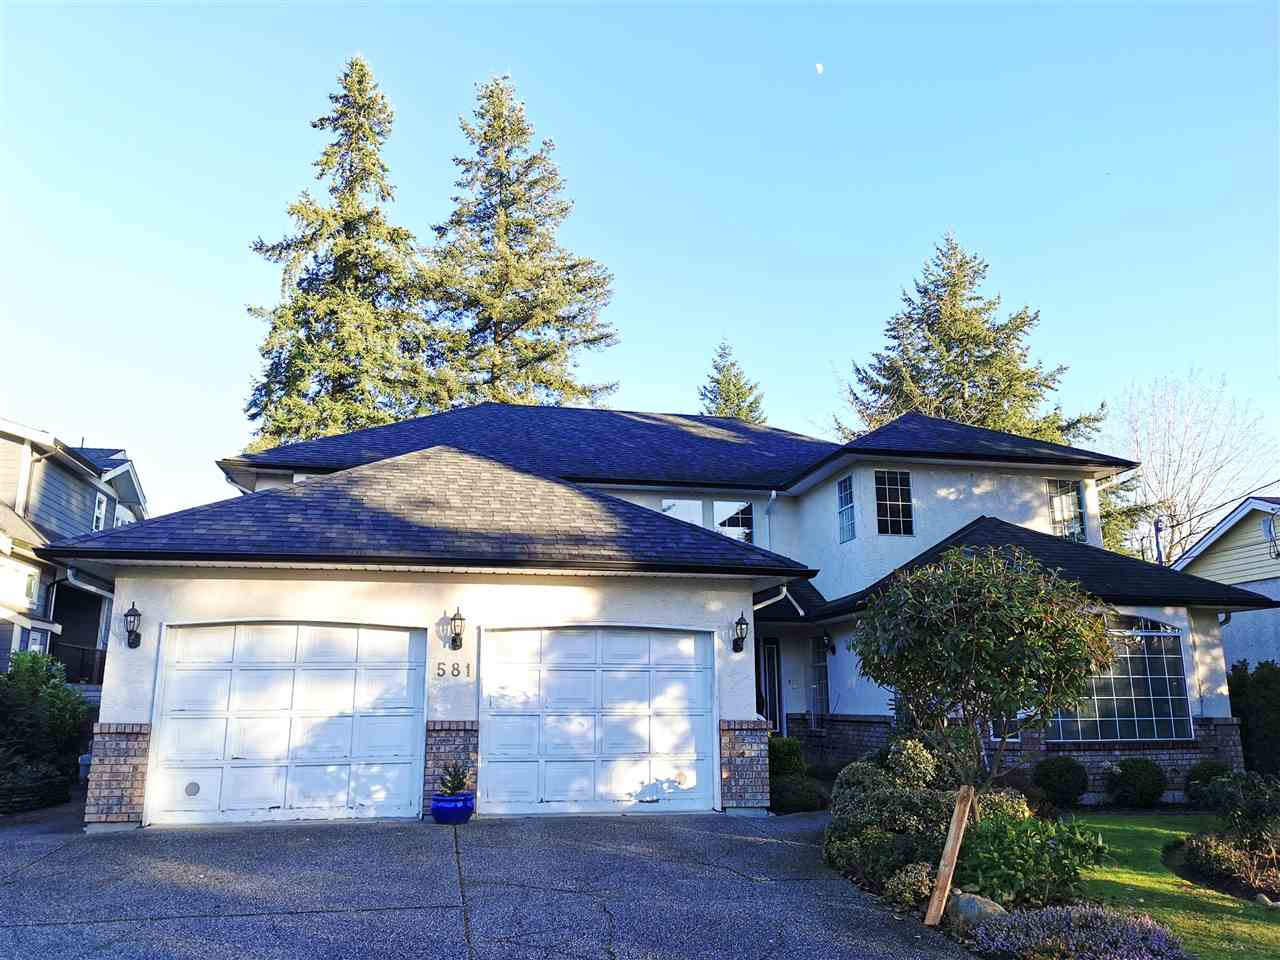 581 HILLCREST STREET - Central Coquitlam House/Single Family for sale, 5 Bedrooms (R2531630)